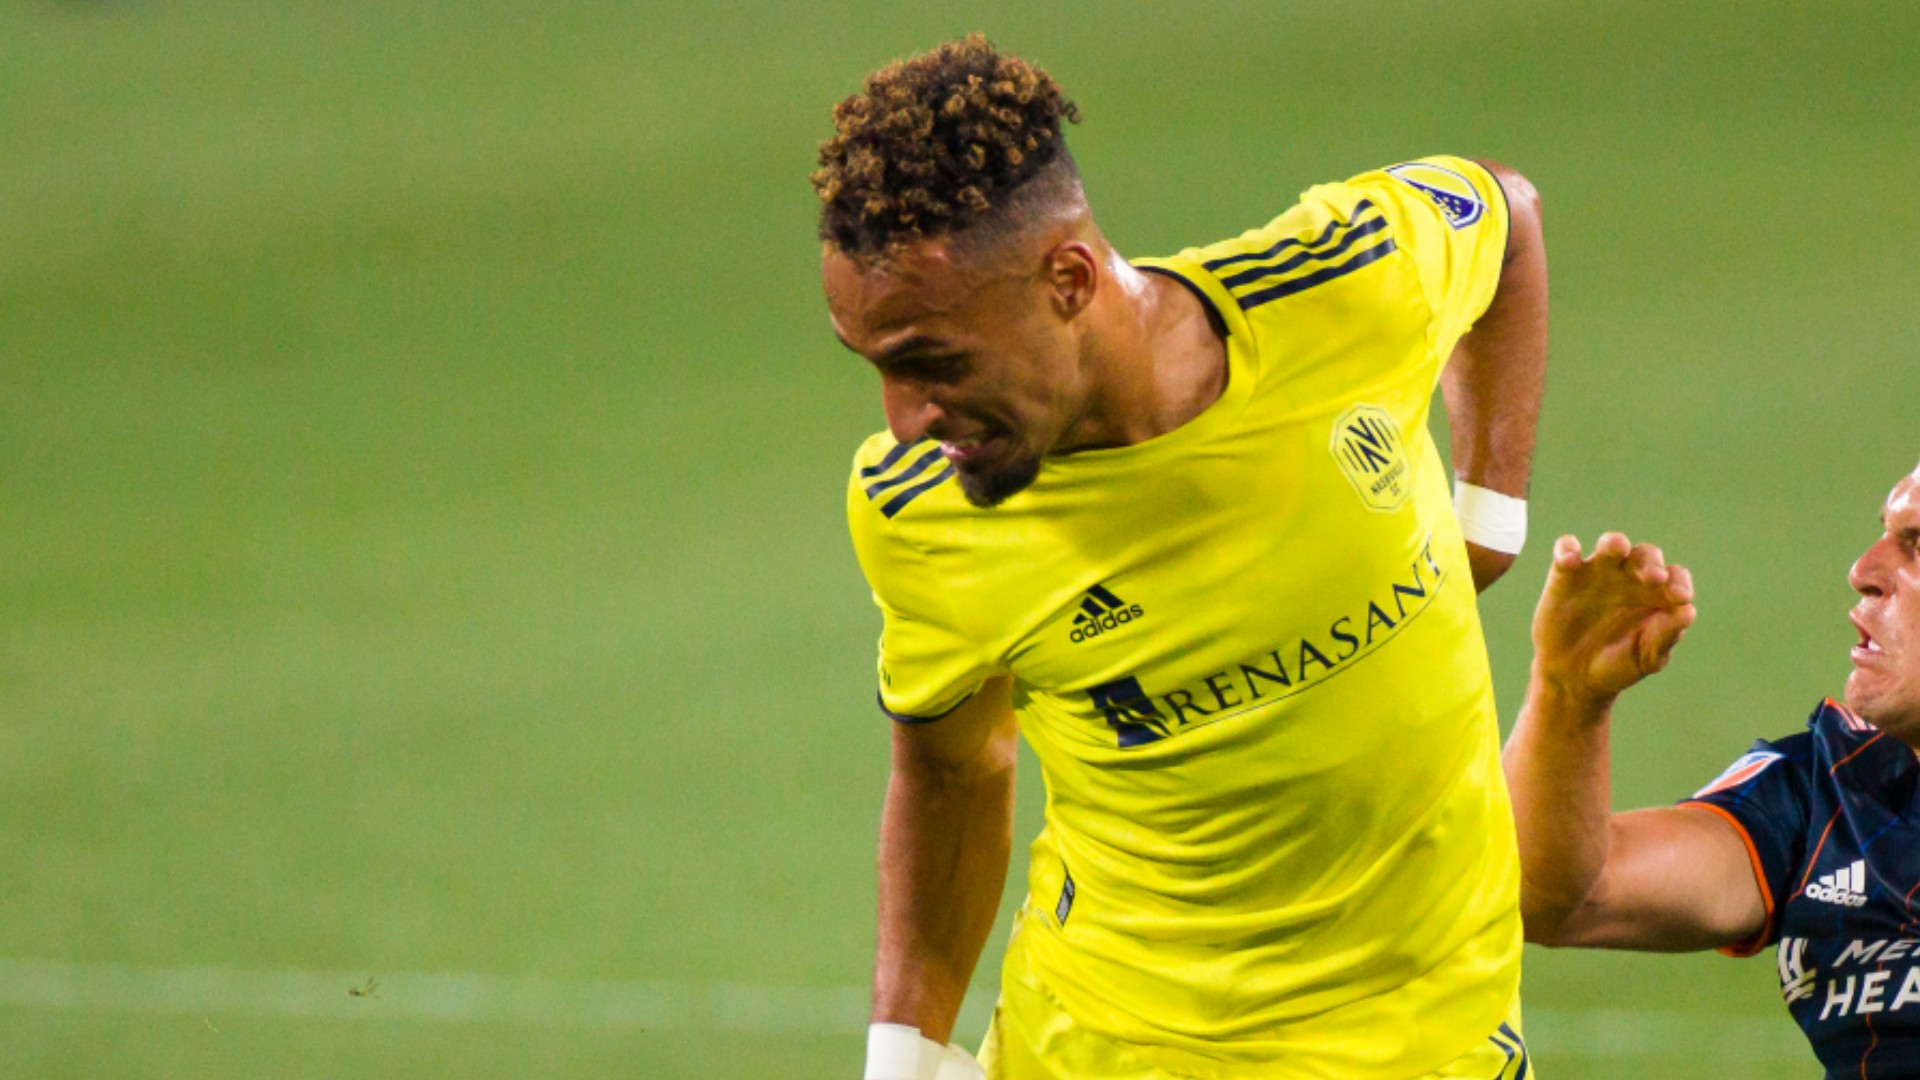 Nashville's Mukhtar sets new MLS record with quick-fire hat-trick against Chicago Fire